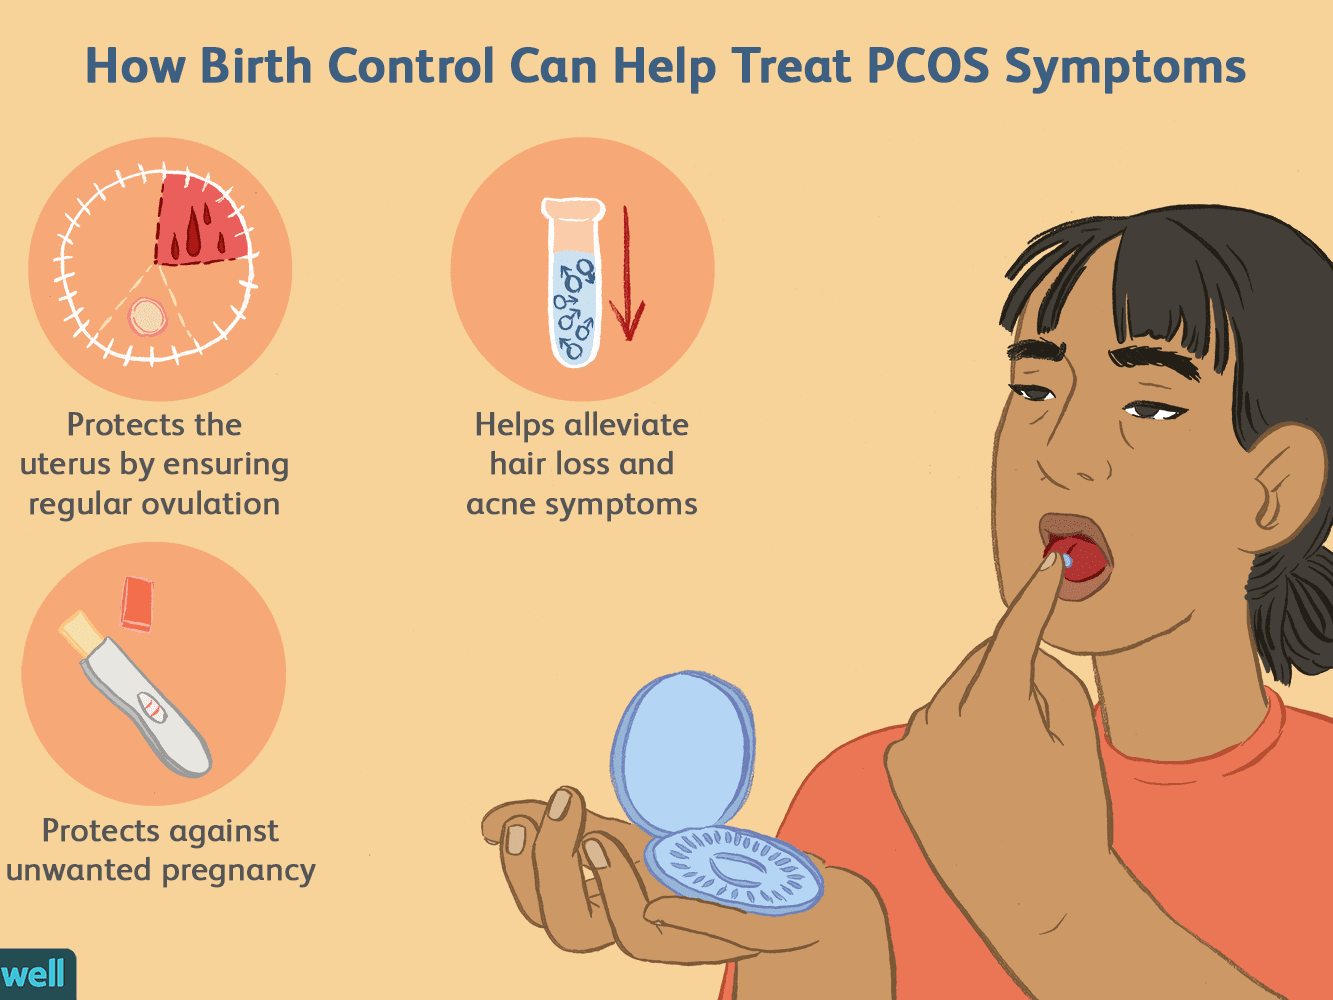 Using Birth Control To Treat Pcos